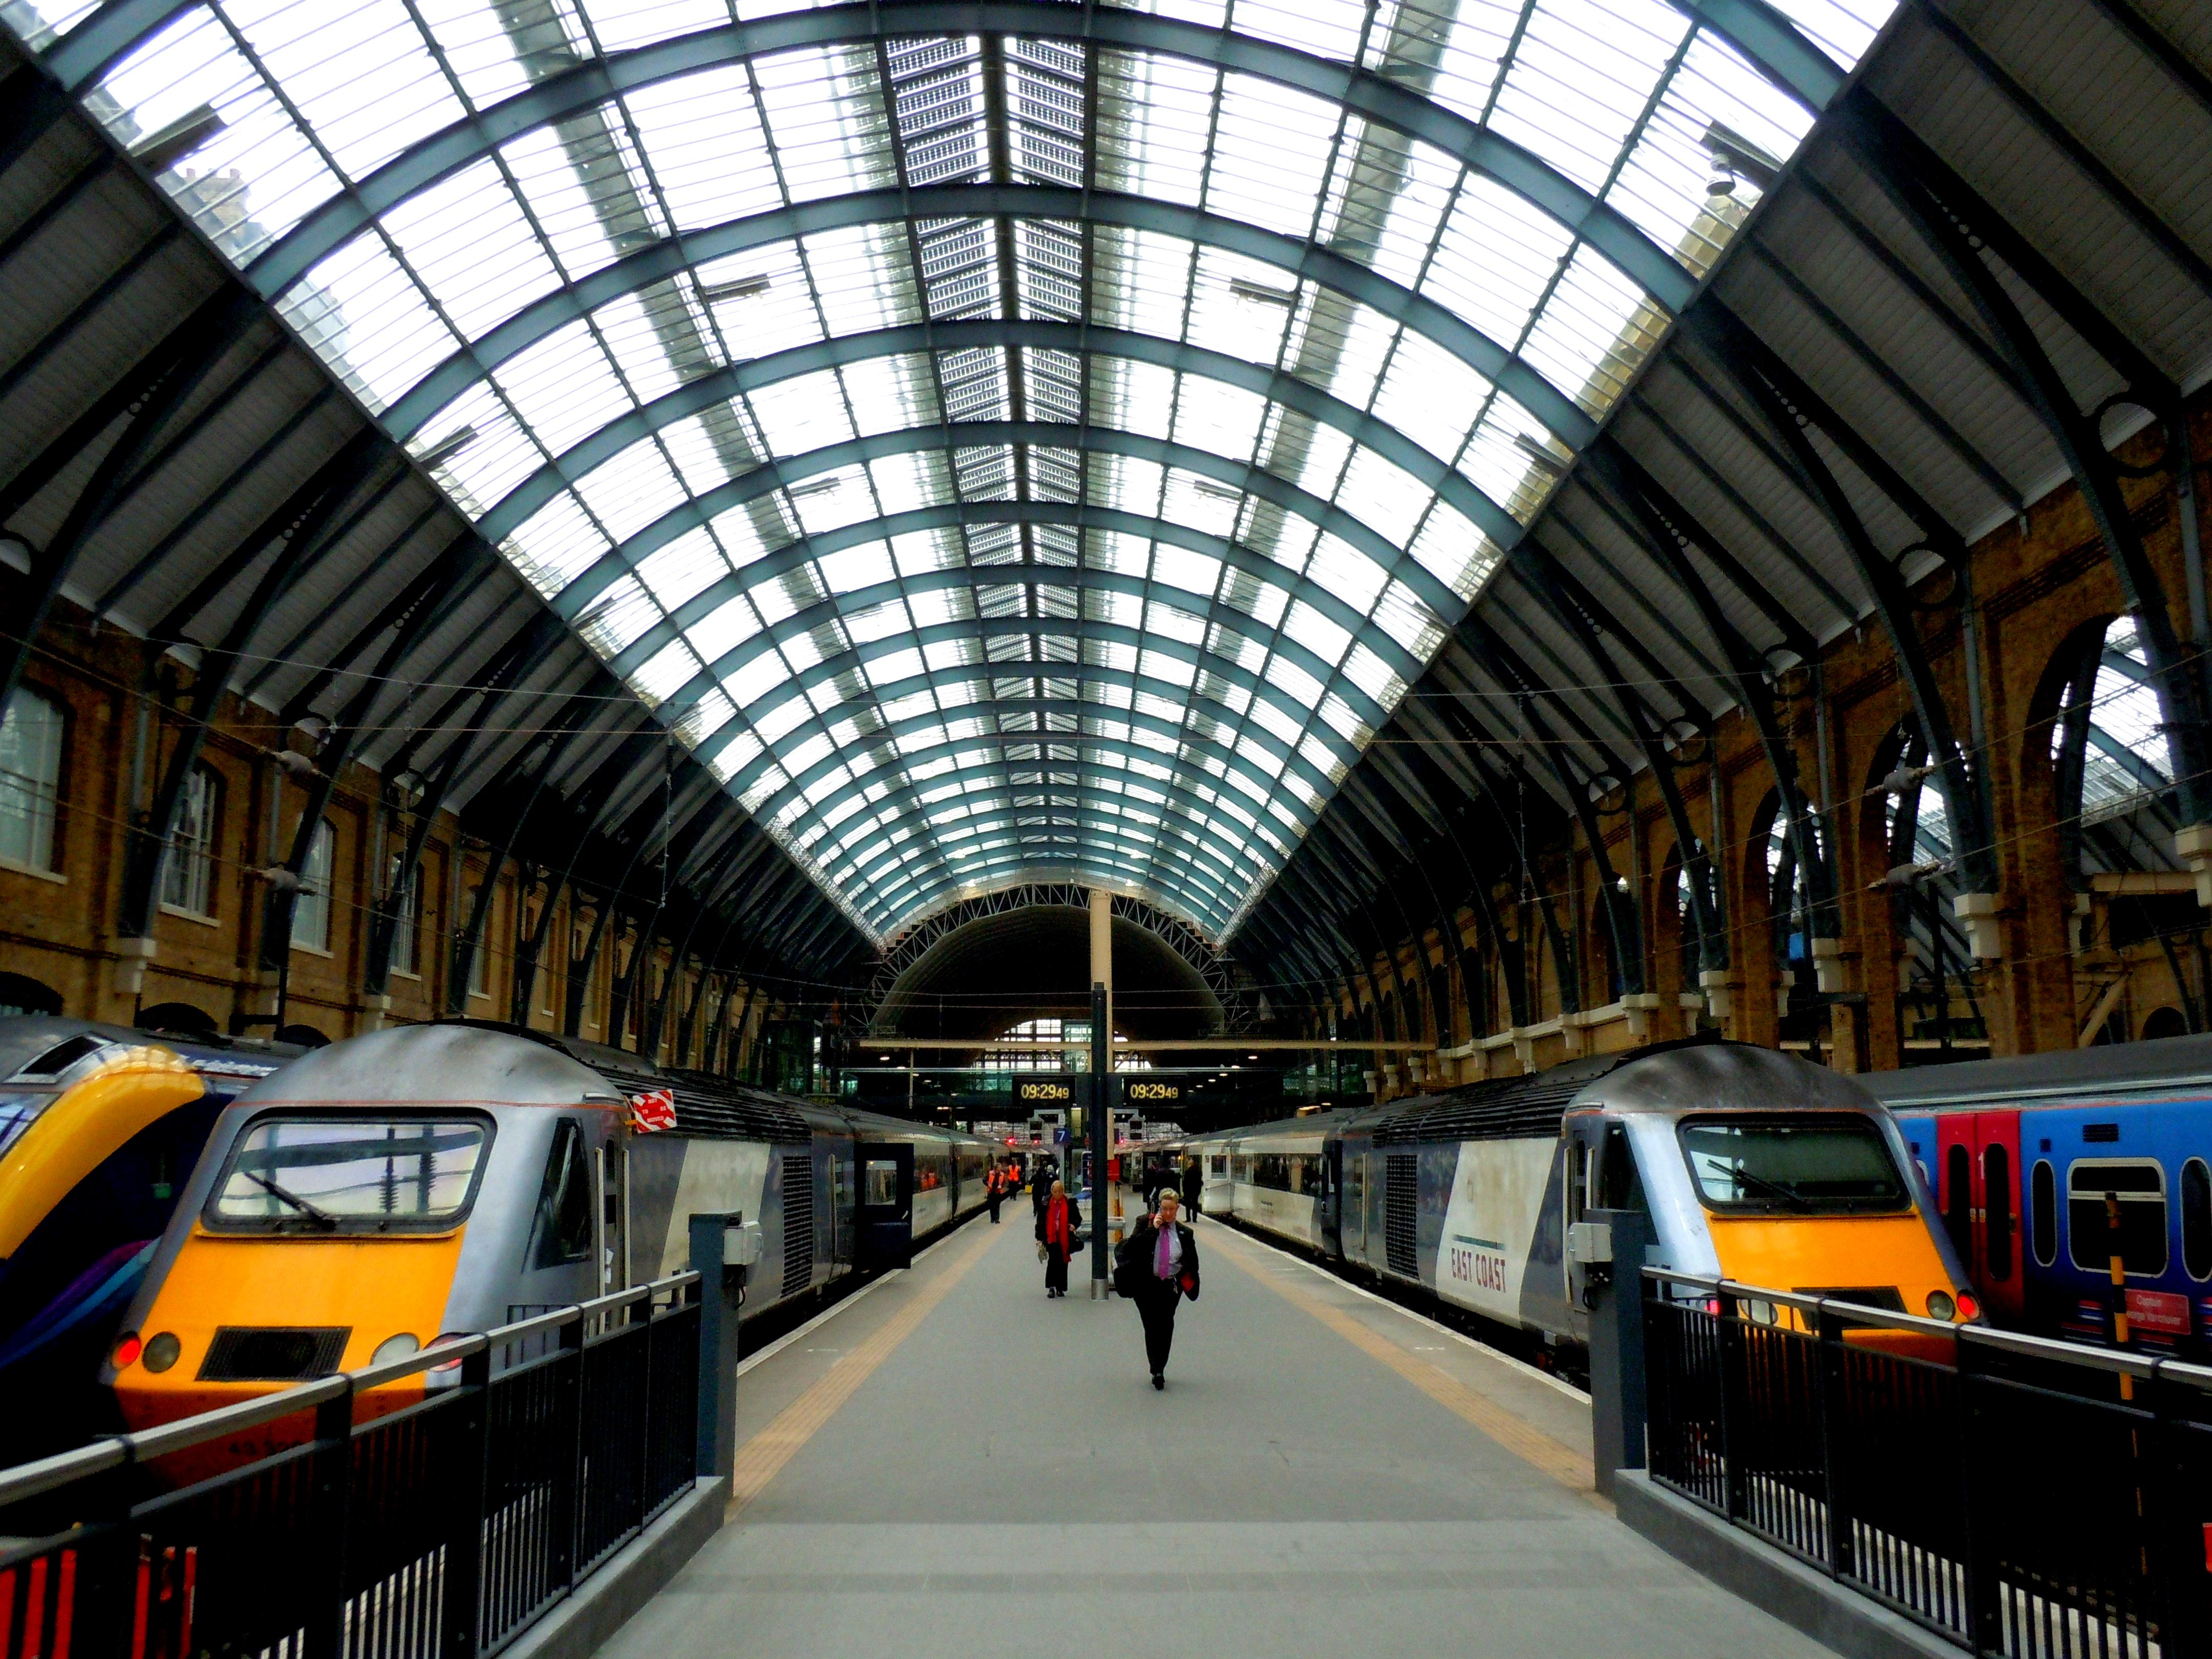 Kings_Cross_Train_Station_London_England.jpg?profile=RESIZE_400x